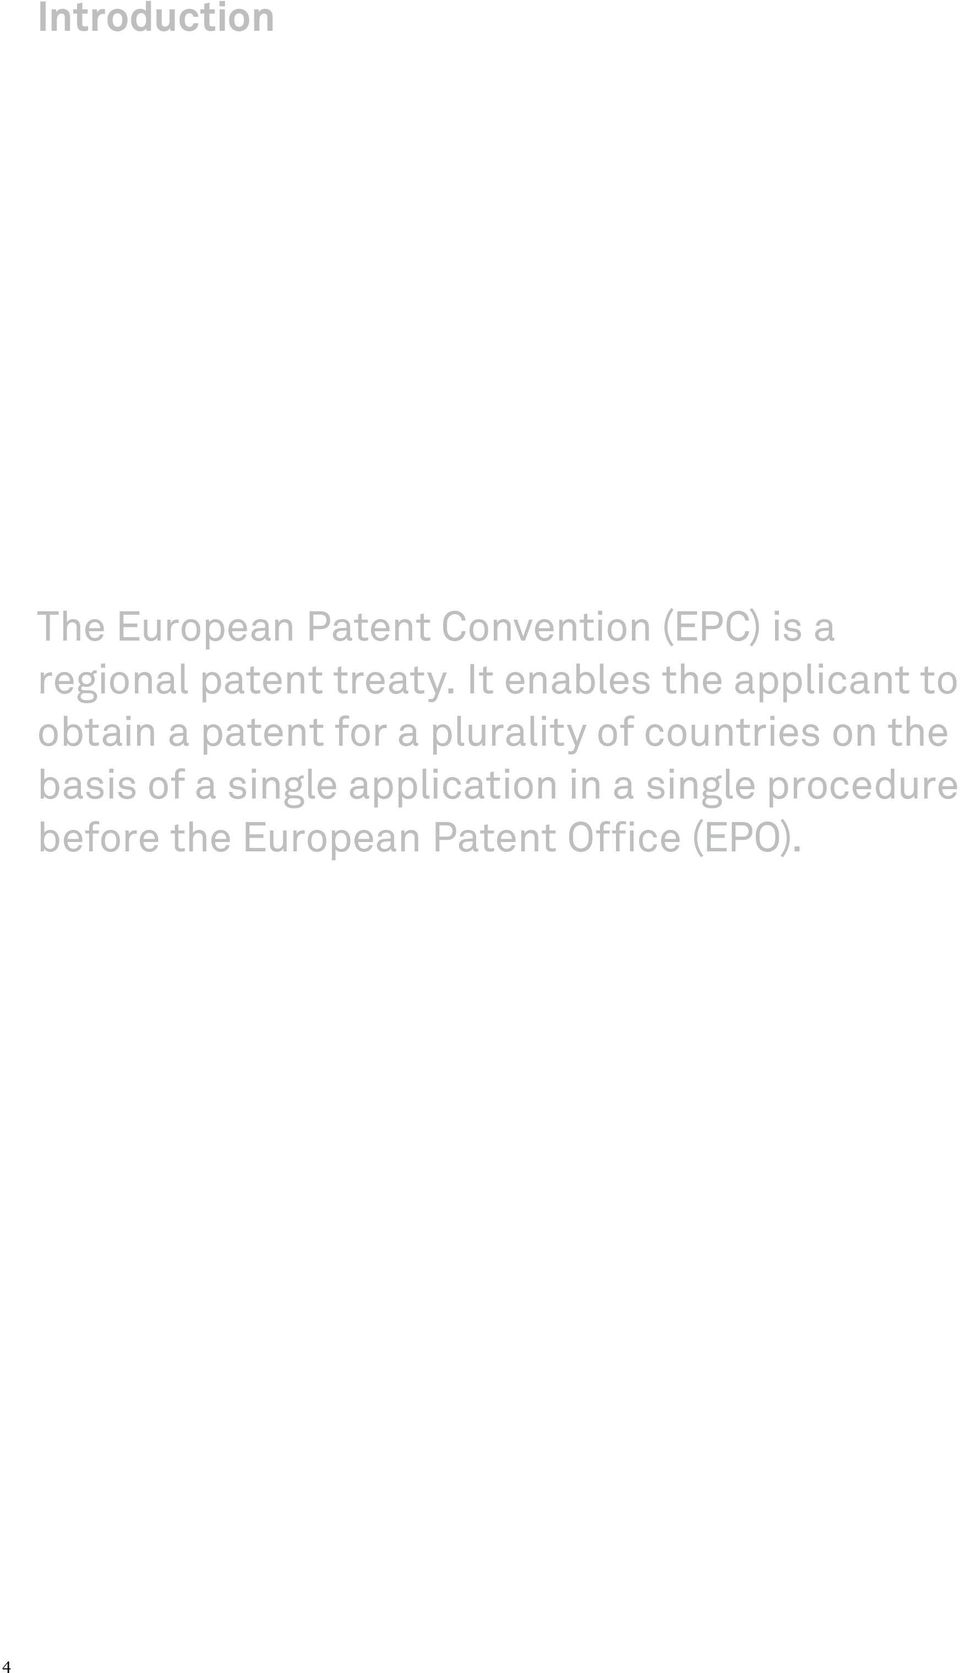 It enables the applicant to obtain a patent for a plurality of